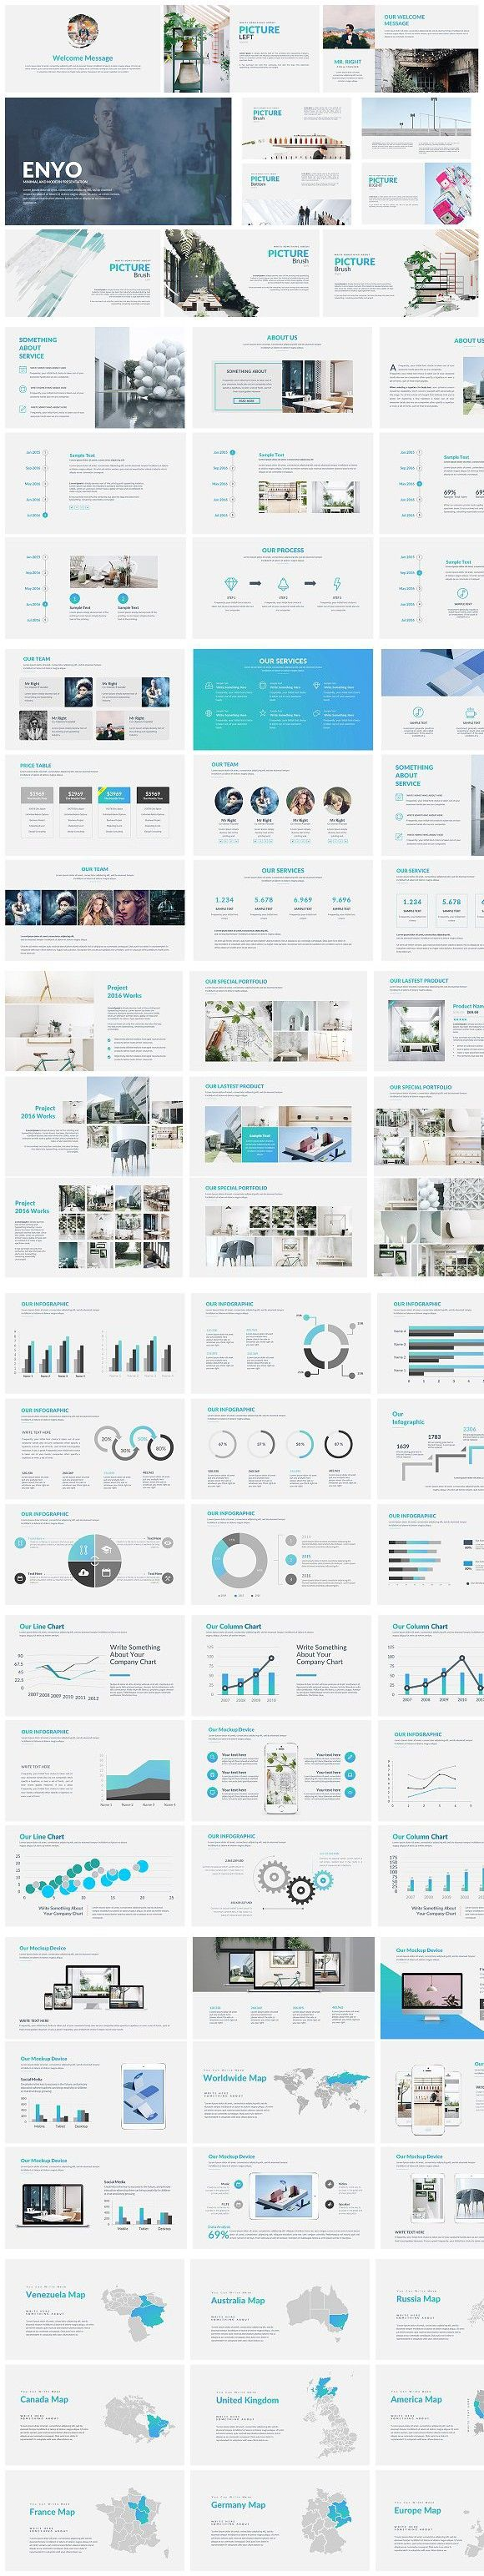 Enyo Creative Powerpoint Template. Infographic Templates. $15.00